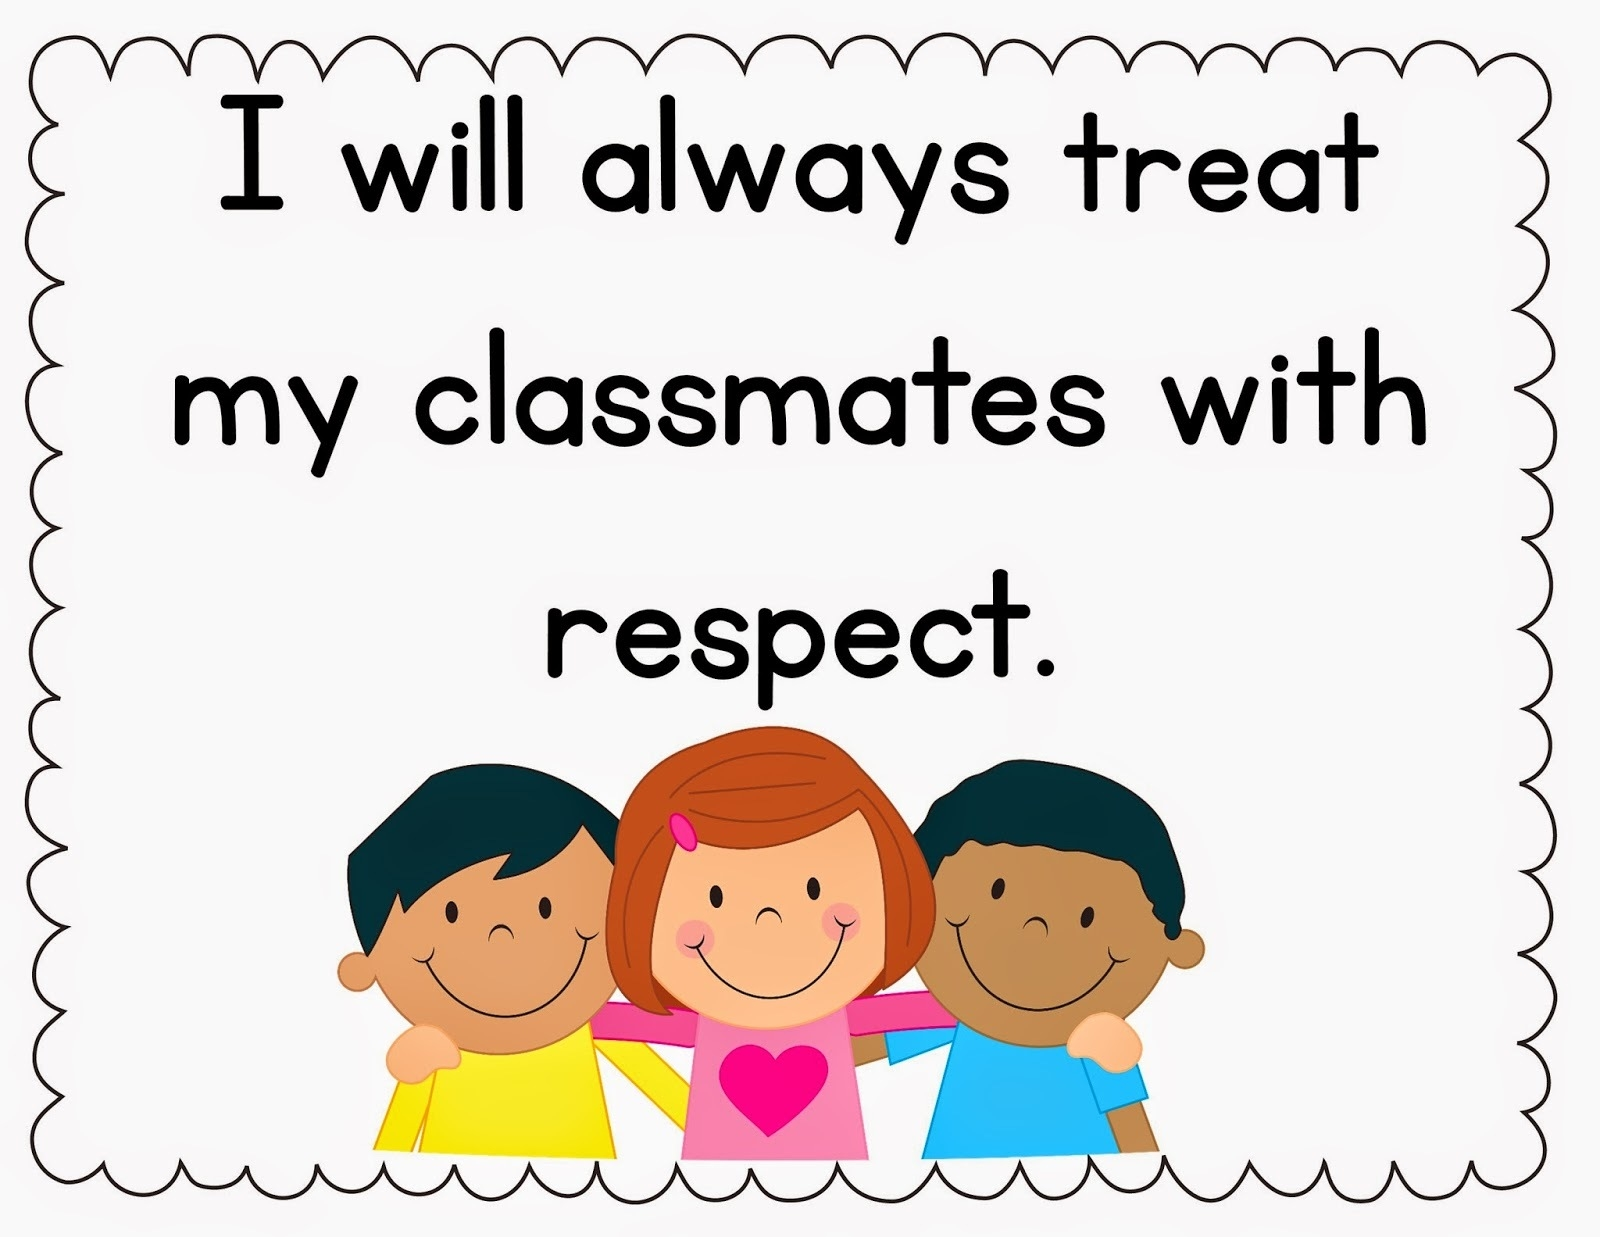 Caring clipart classroom. Rules letters cliparts and